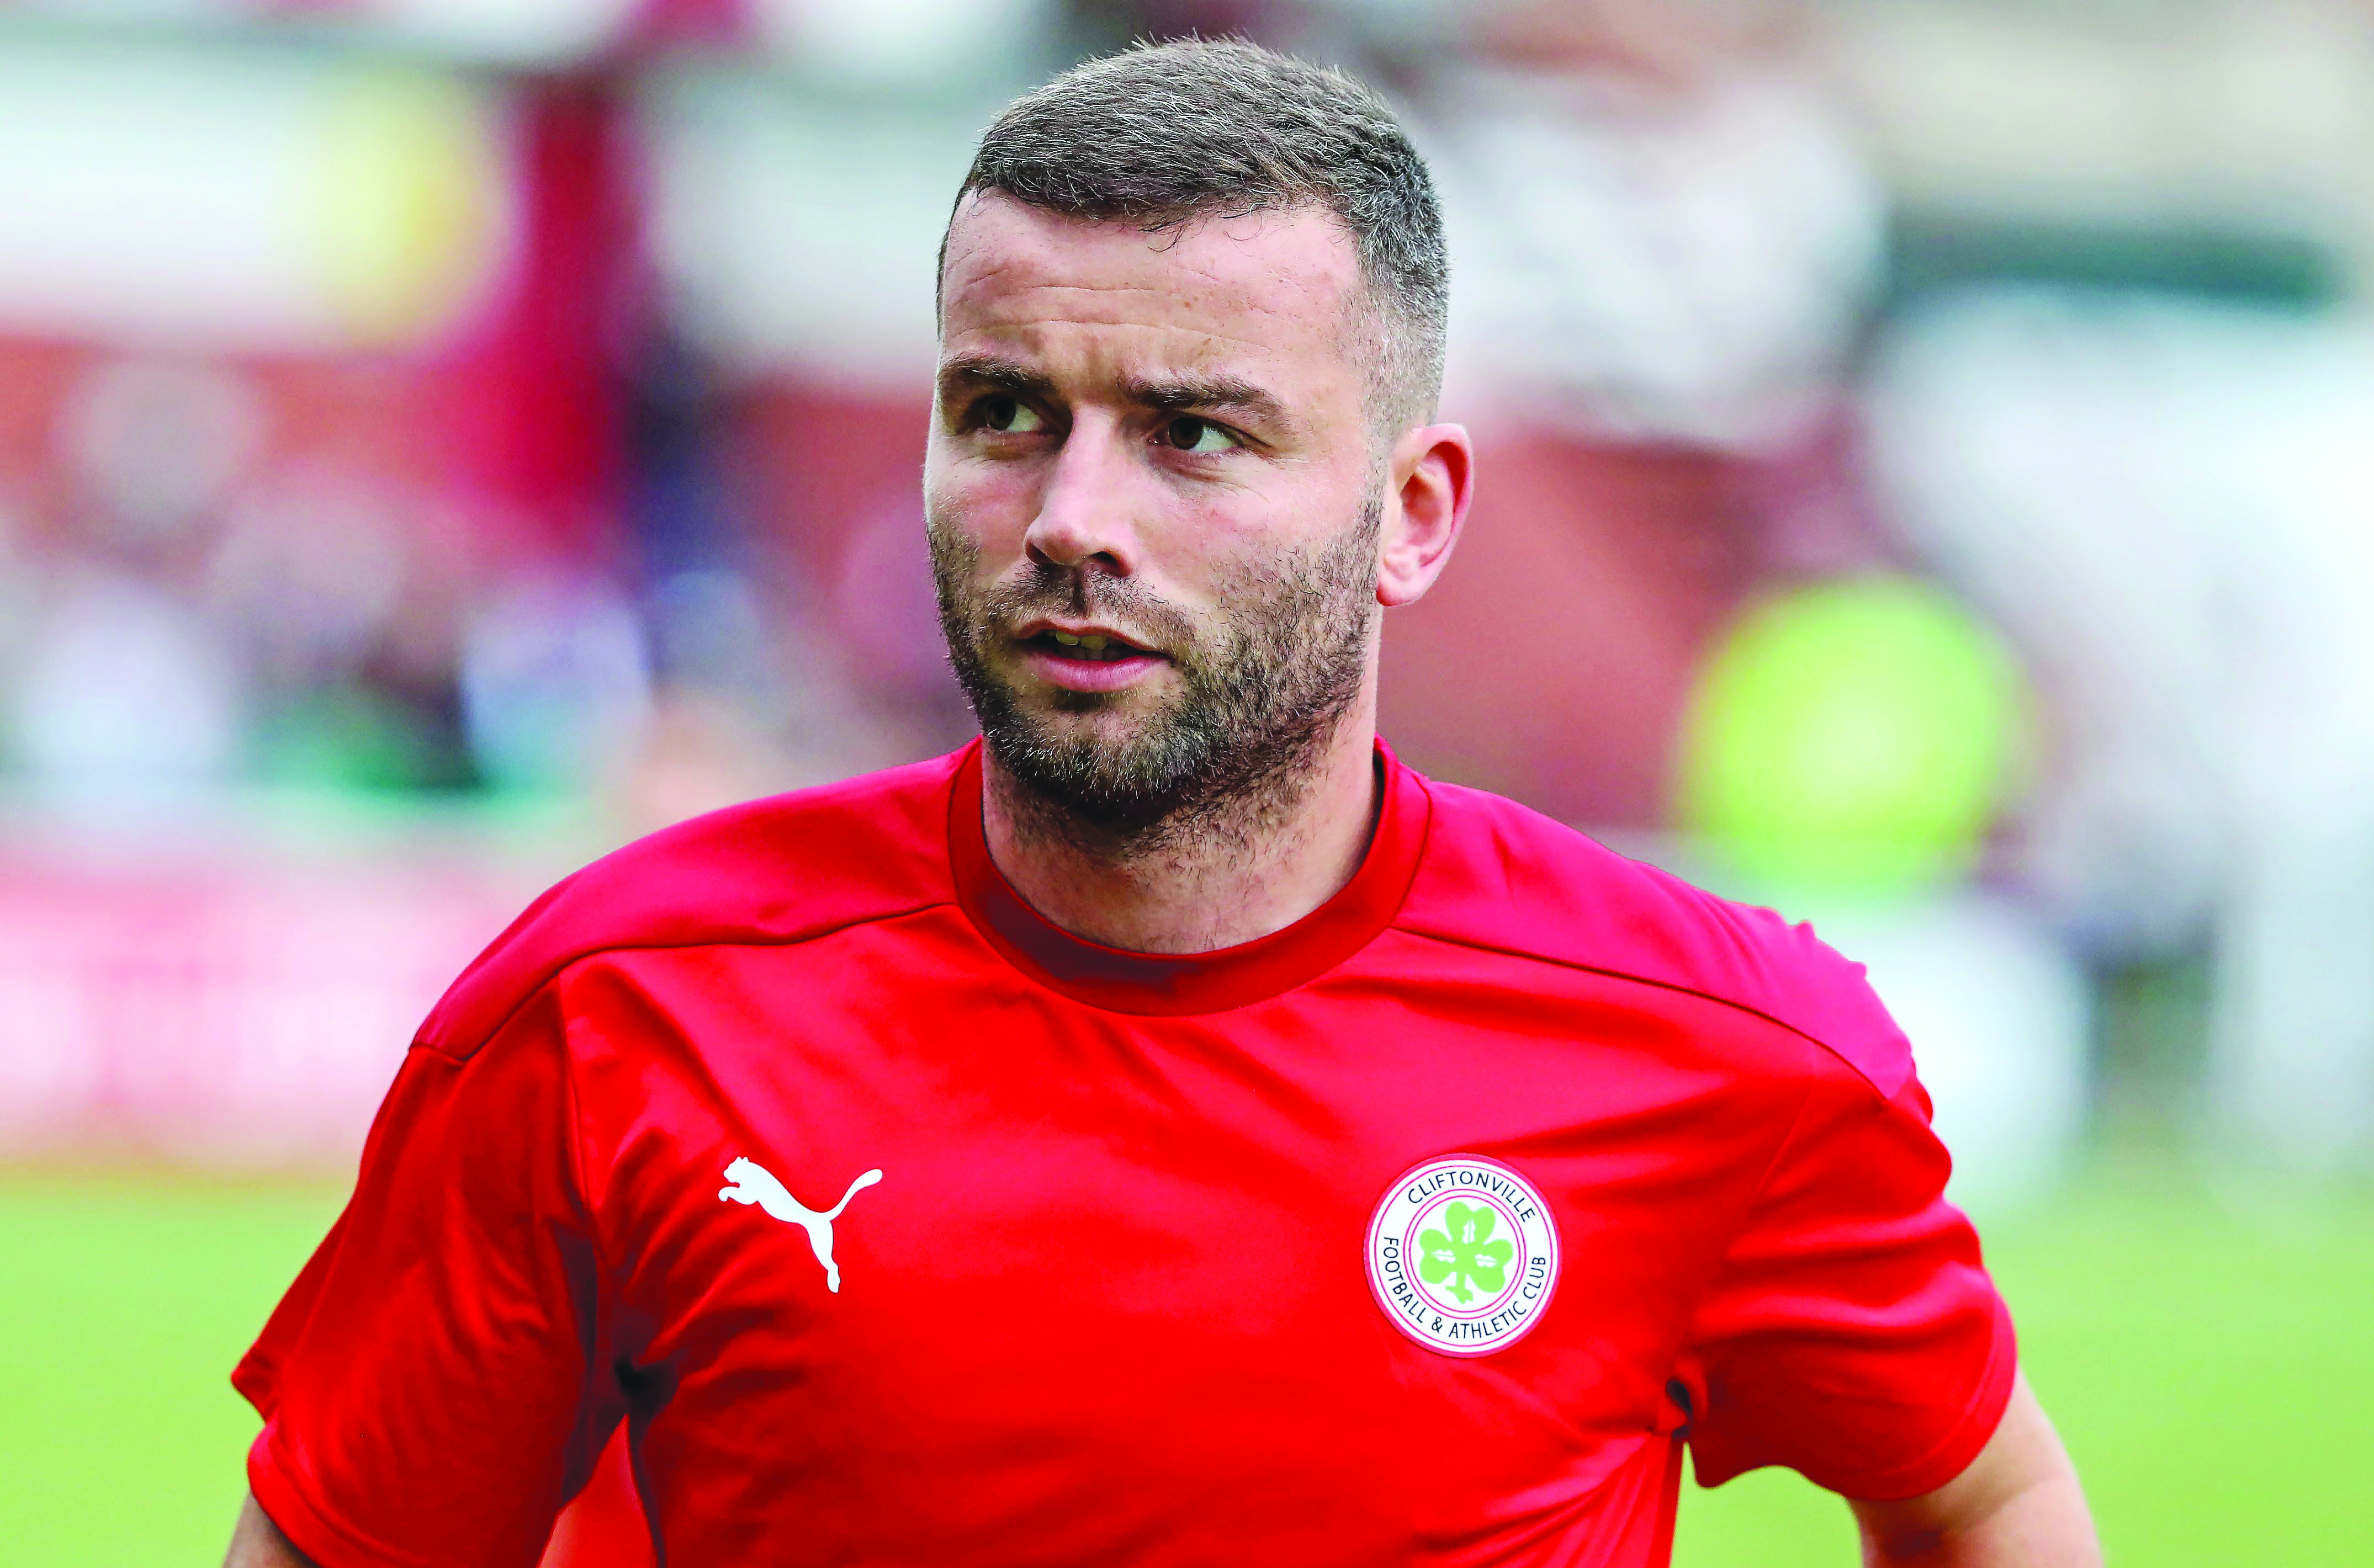 Cliftonville manager Paddy McLaughlin has hailed the impact of Colin Coates who arrived at Solitude this month